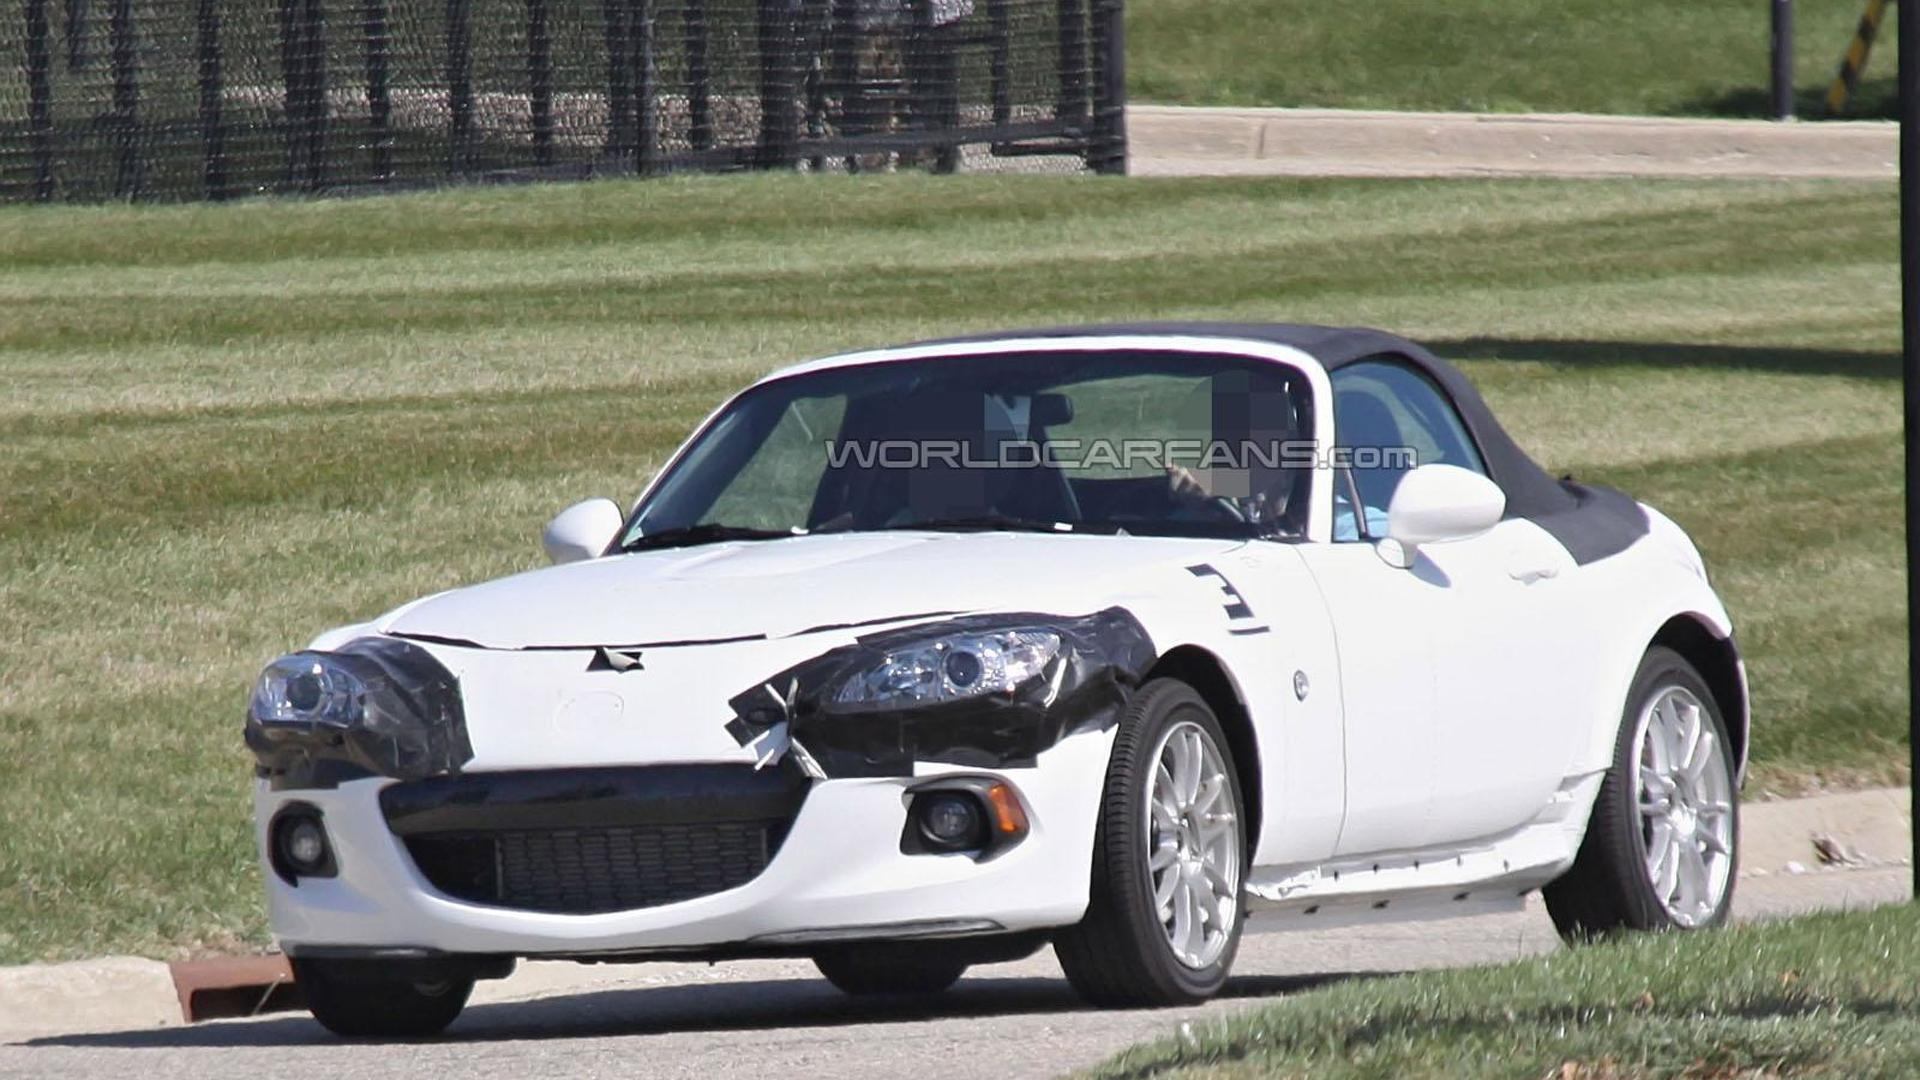 2015 Mazda MX-5 to hearken back to the original model, feature an oval grille - report